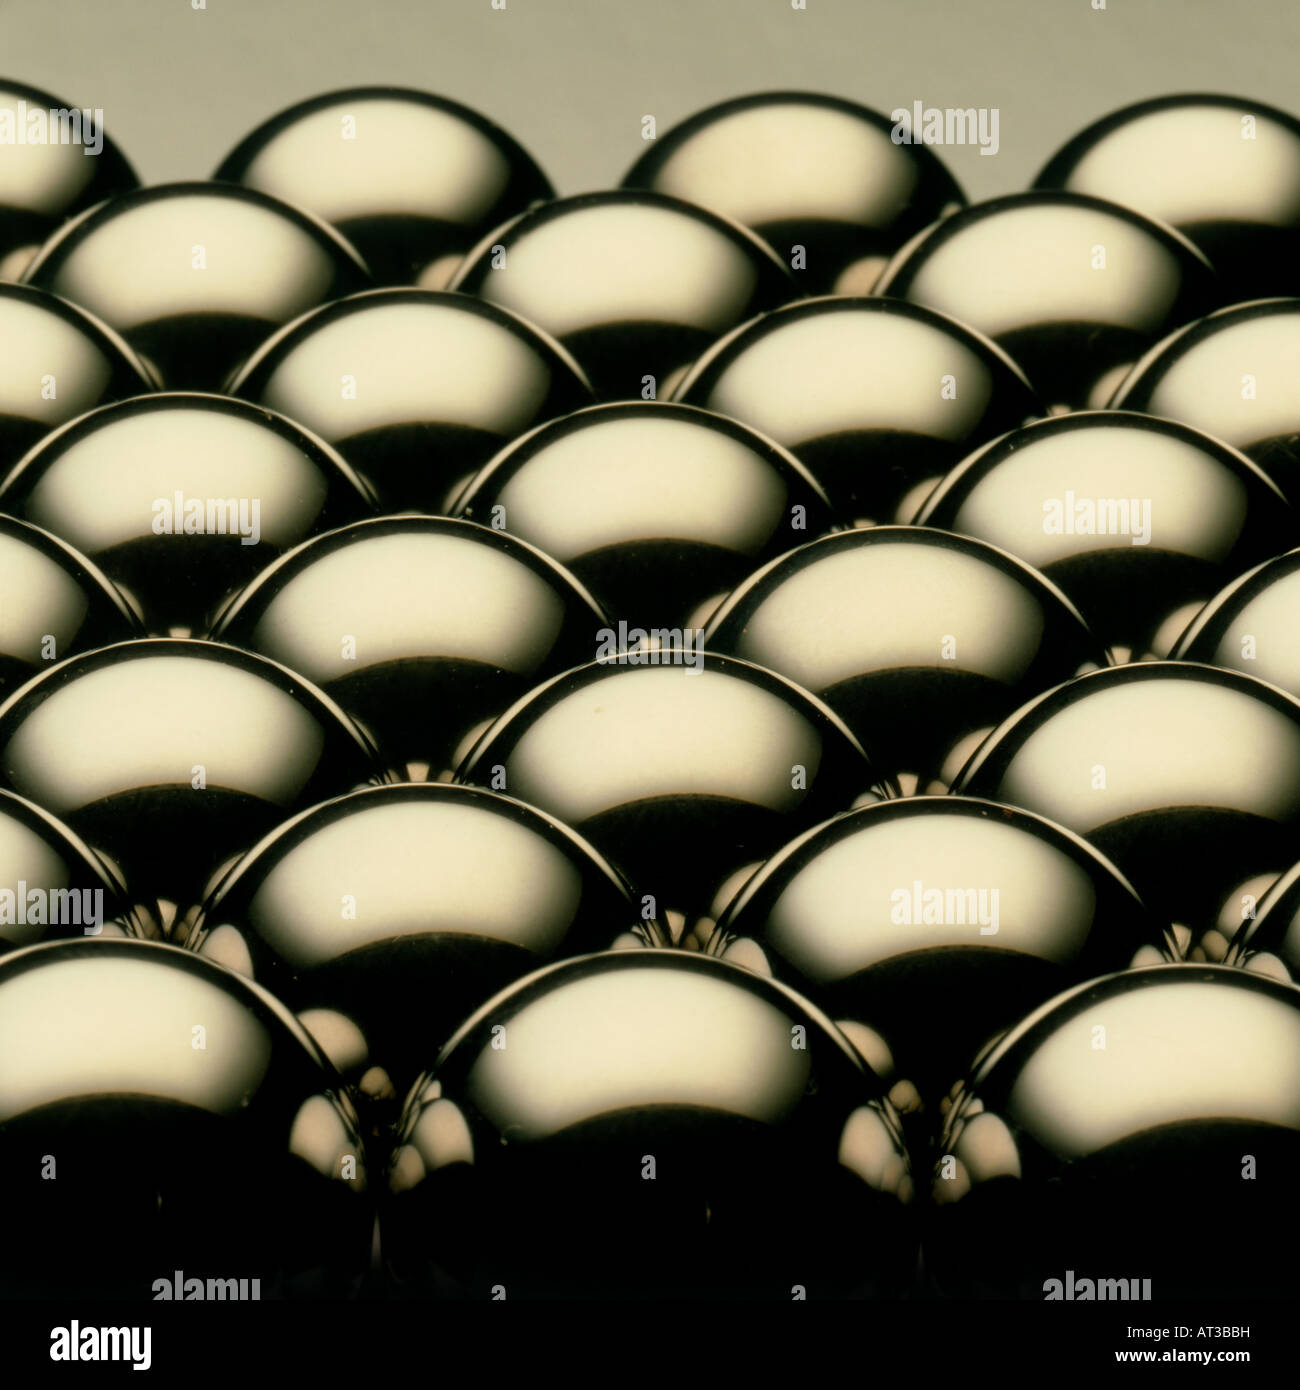 Metallic balls - Stock Image